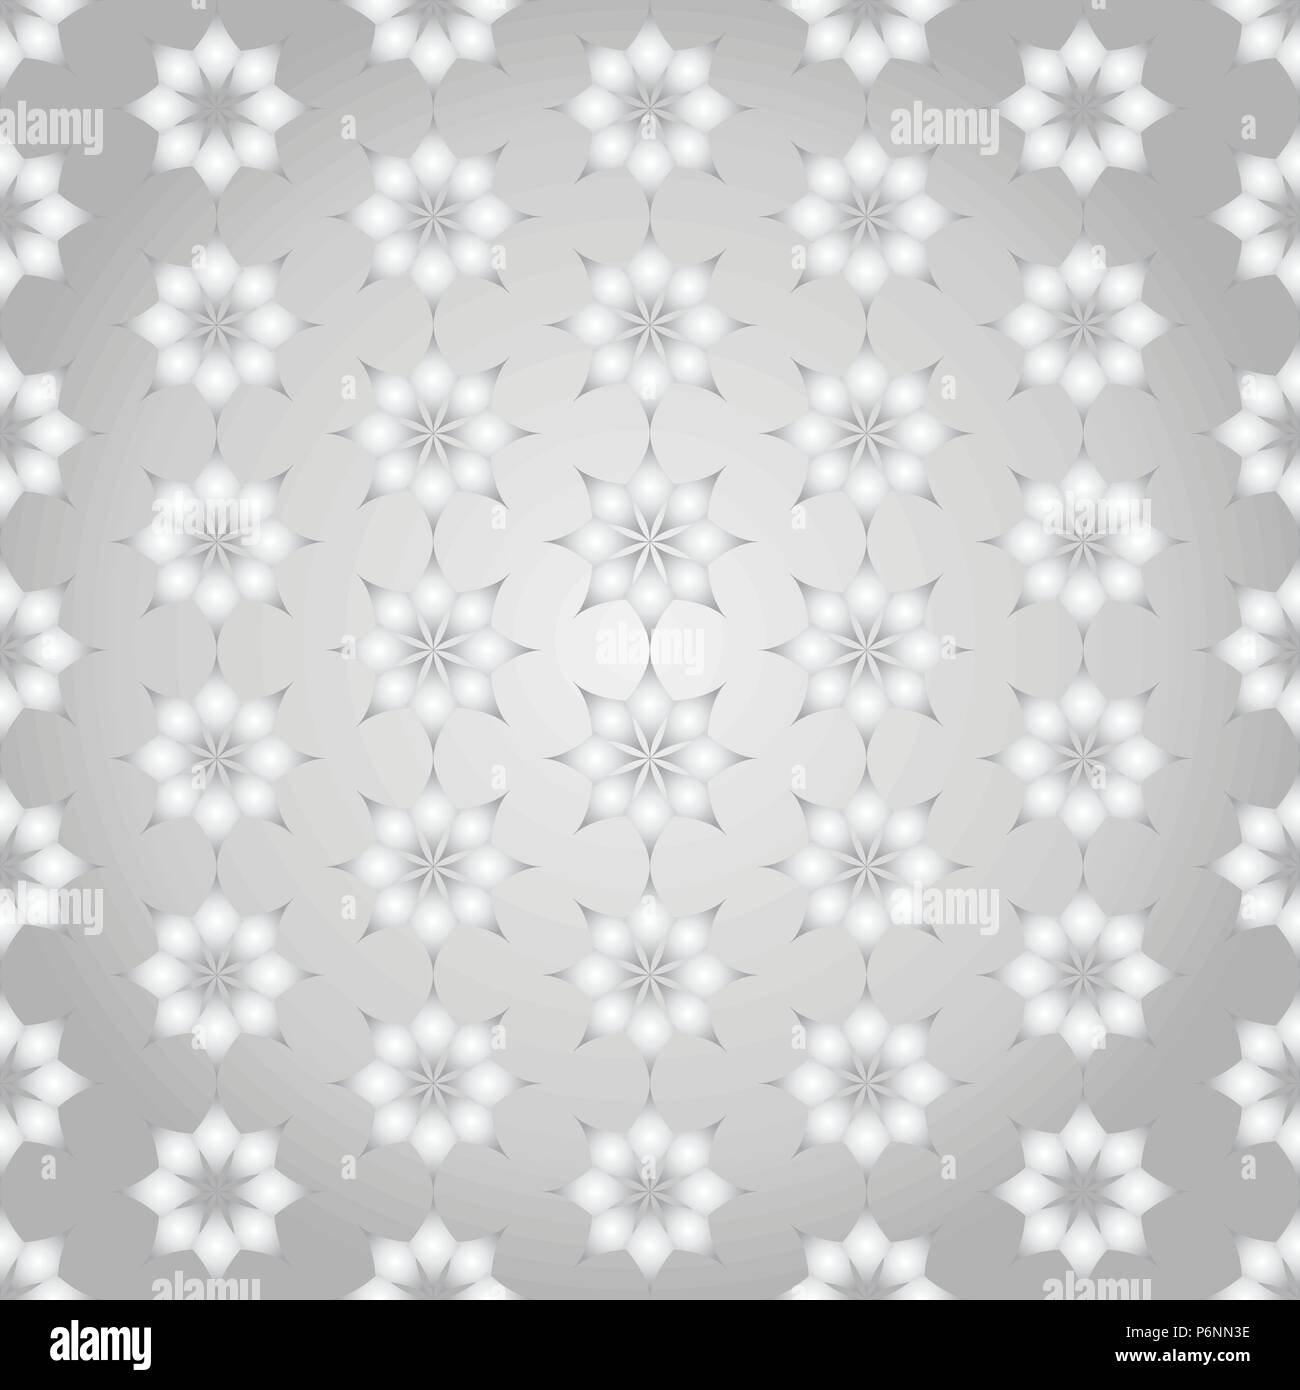 Silver modern classic bloom seamless pattern. Abstract blossom style for graphic and retro design. - Stock Vector